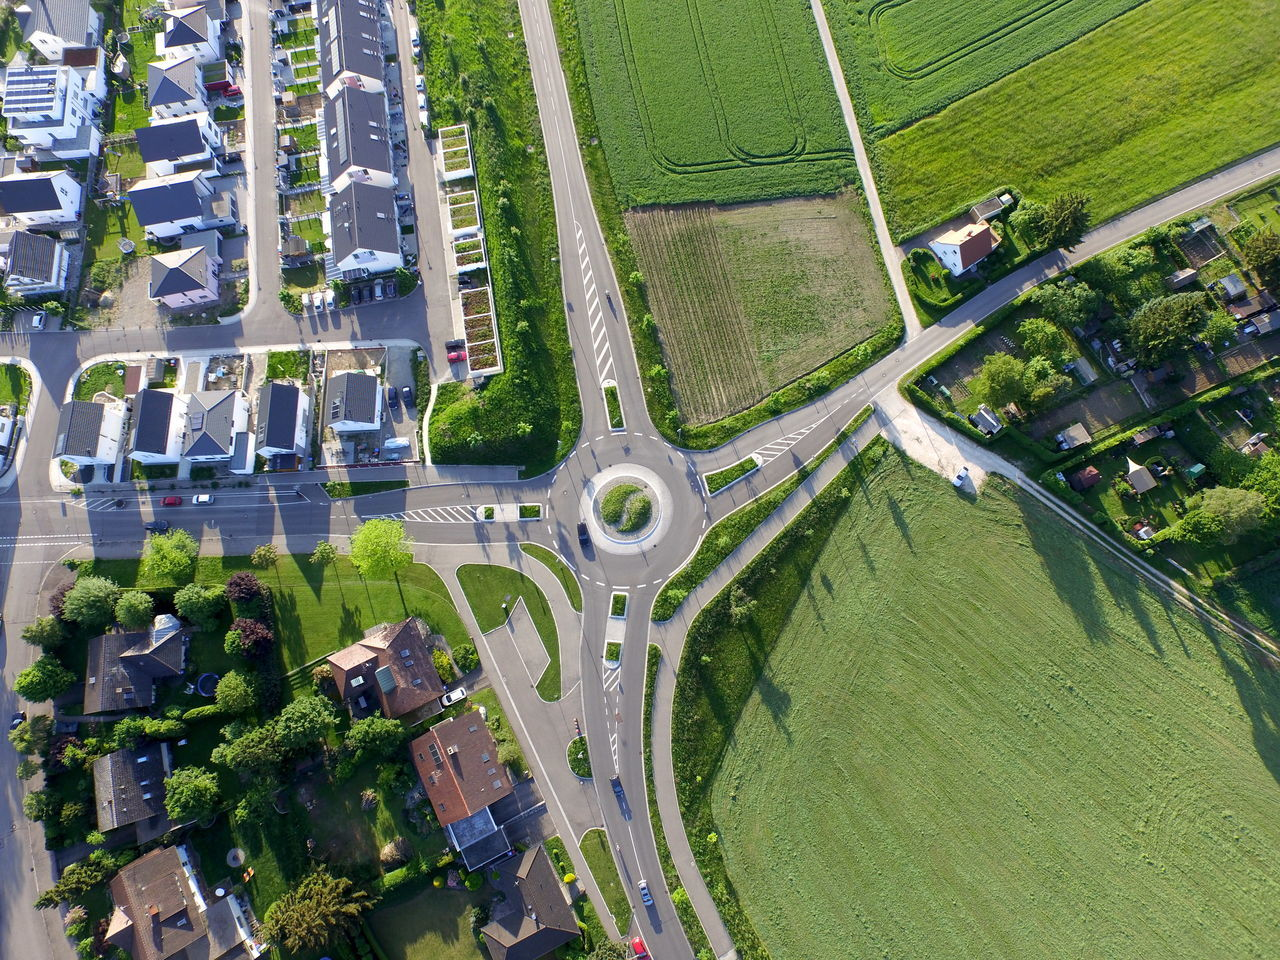 Aerial View Car Dji Grass Green Green Color Inspire Outdoors Perspective Road Roofs Roundabout Street Photography Tilt